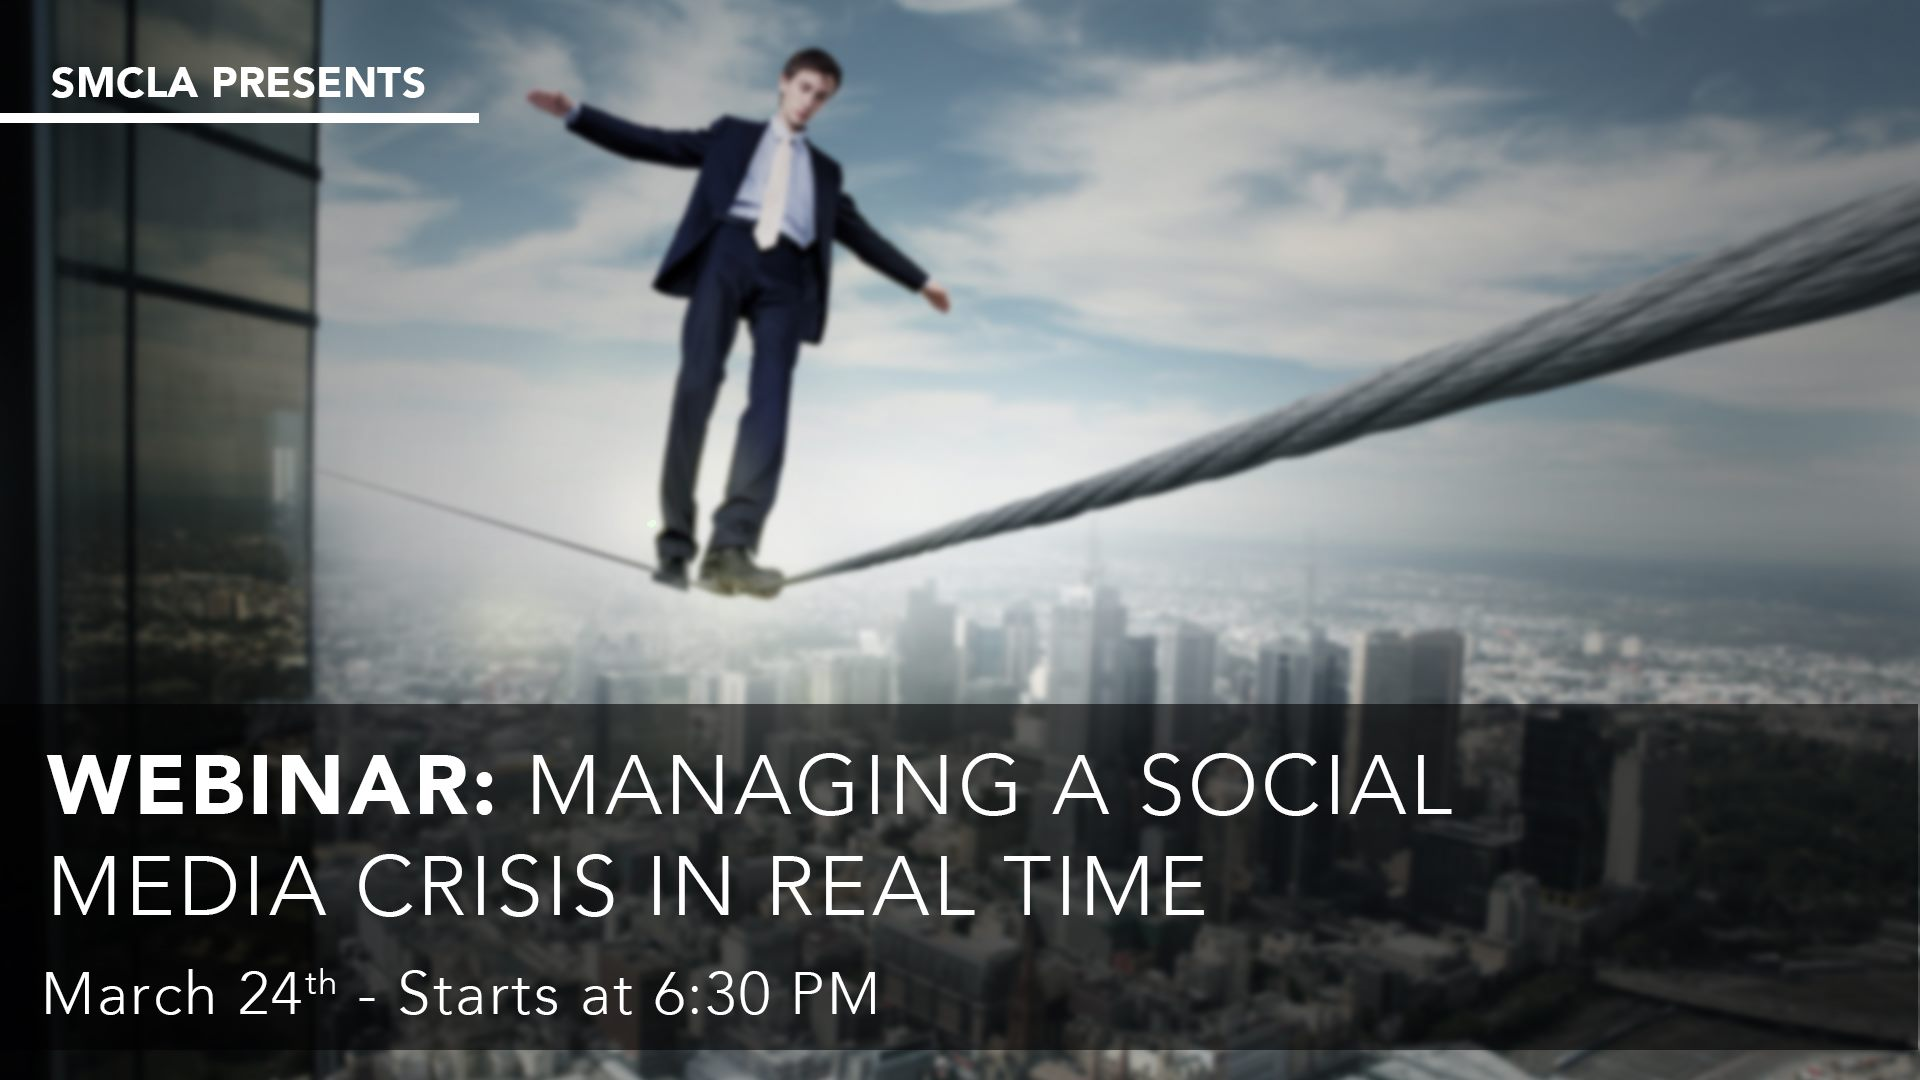 SMCLA_Webinar_Managing_Social_Media_Crisis_Real-Time_2